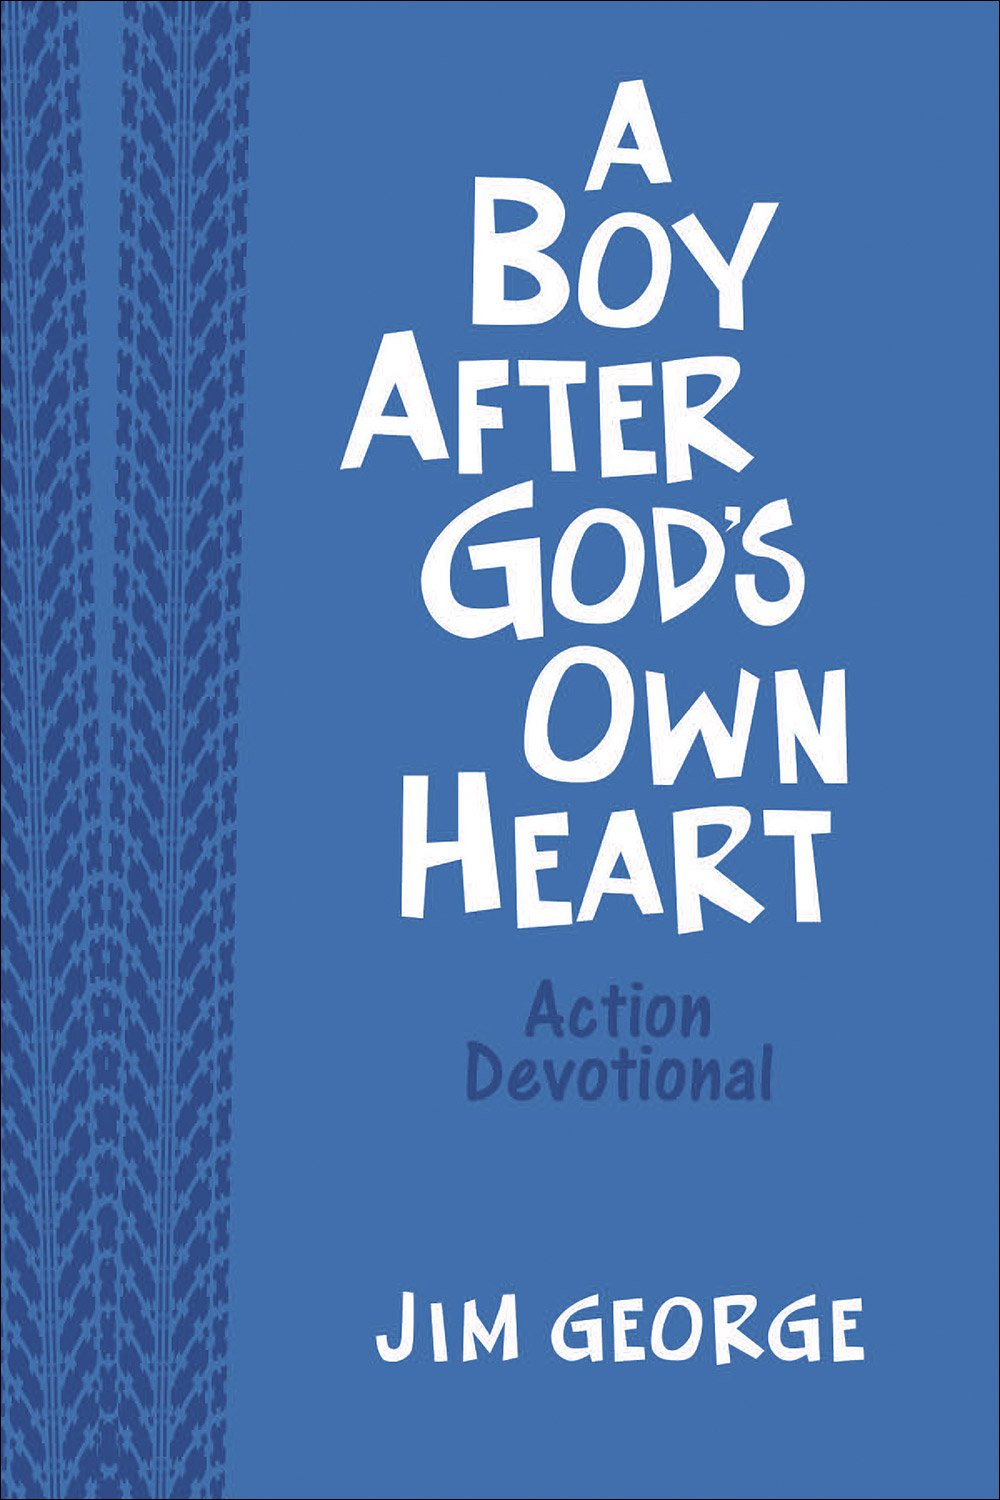 A Boy After God's Own Heart Action Devotional Deluxe Edition: Jim George,  Walkup, Skinner: 9780736974424: Books - Amazon.ca